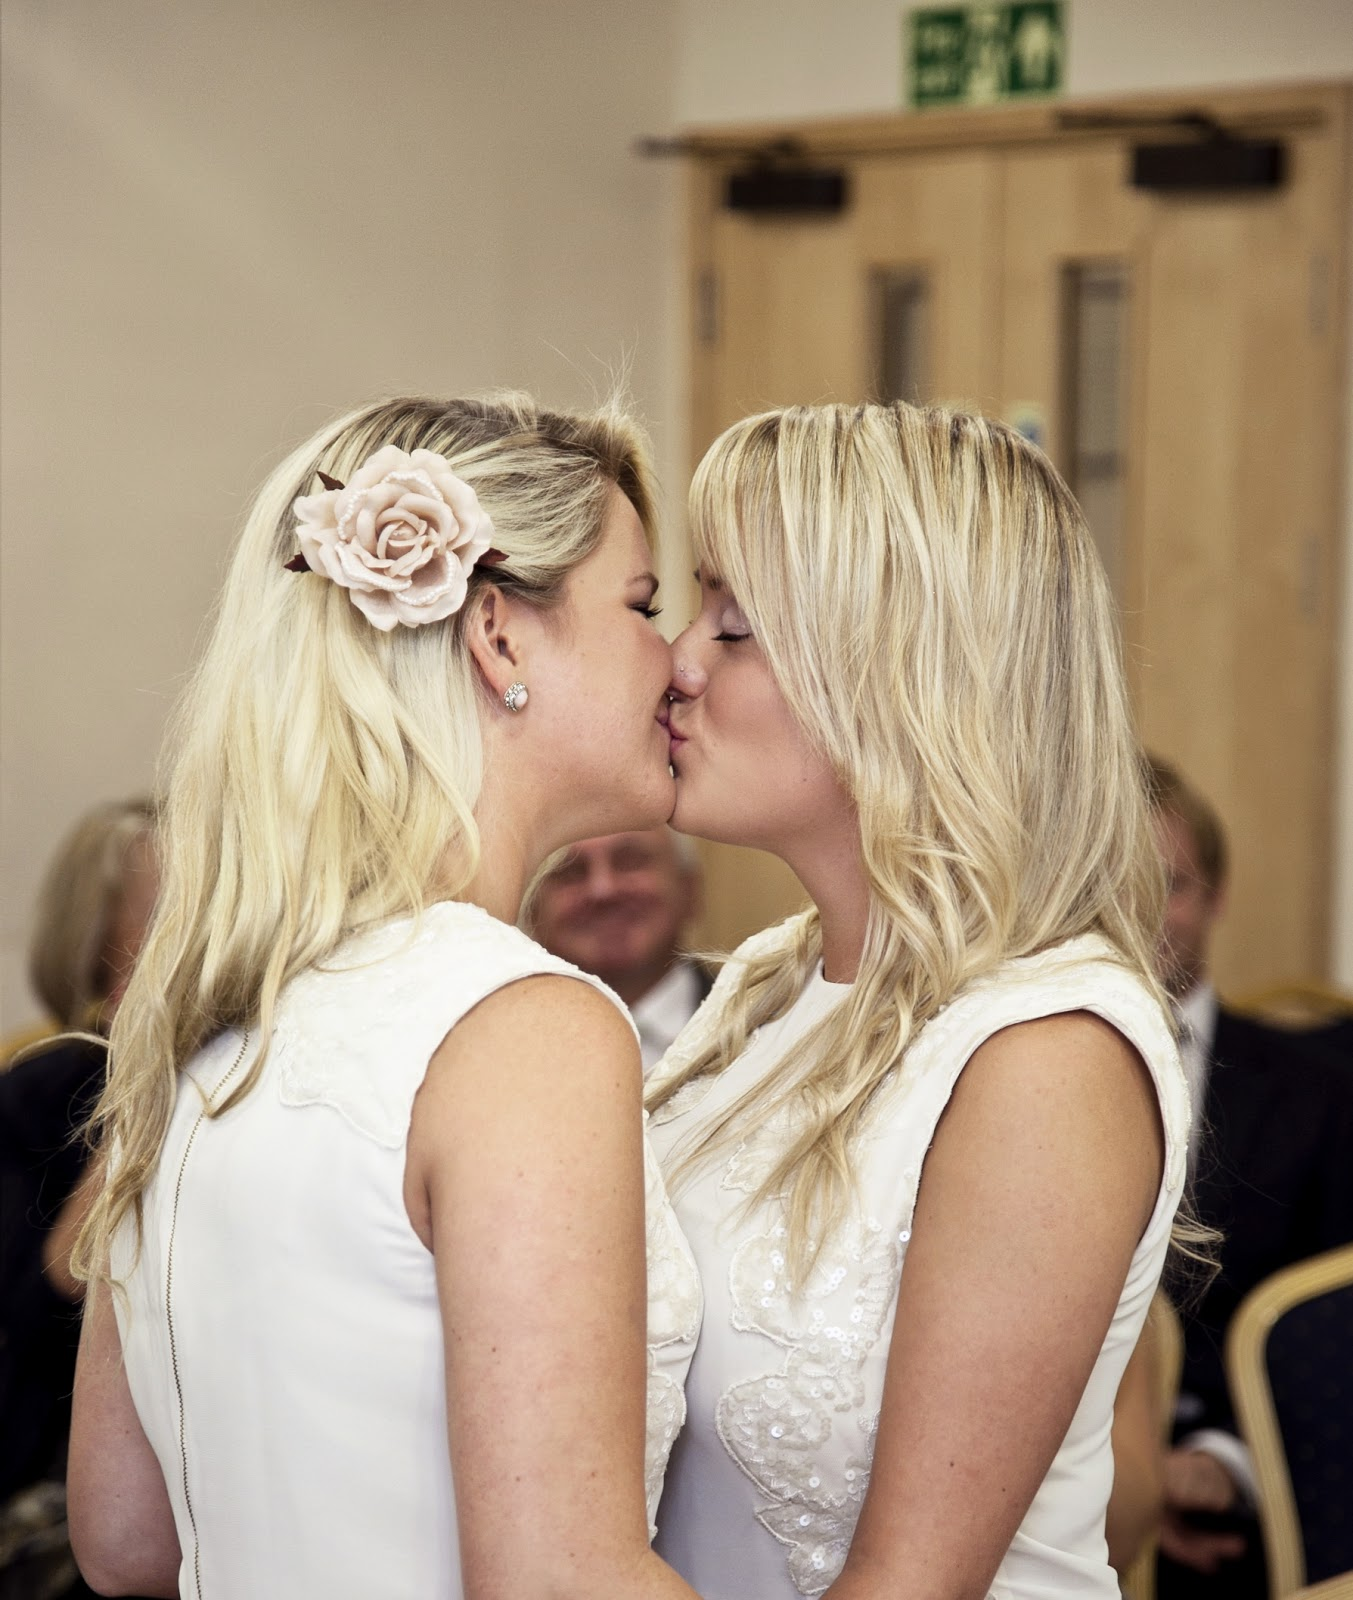 Wife And Wife Kiss